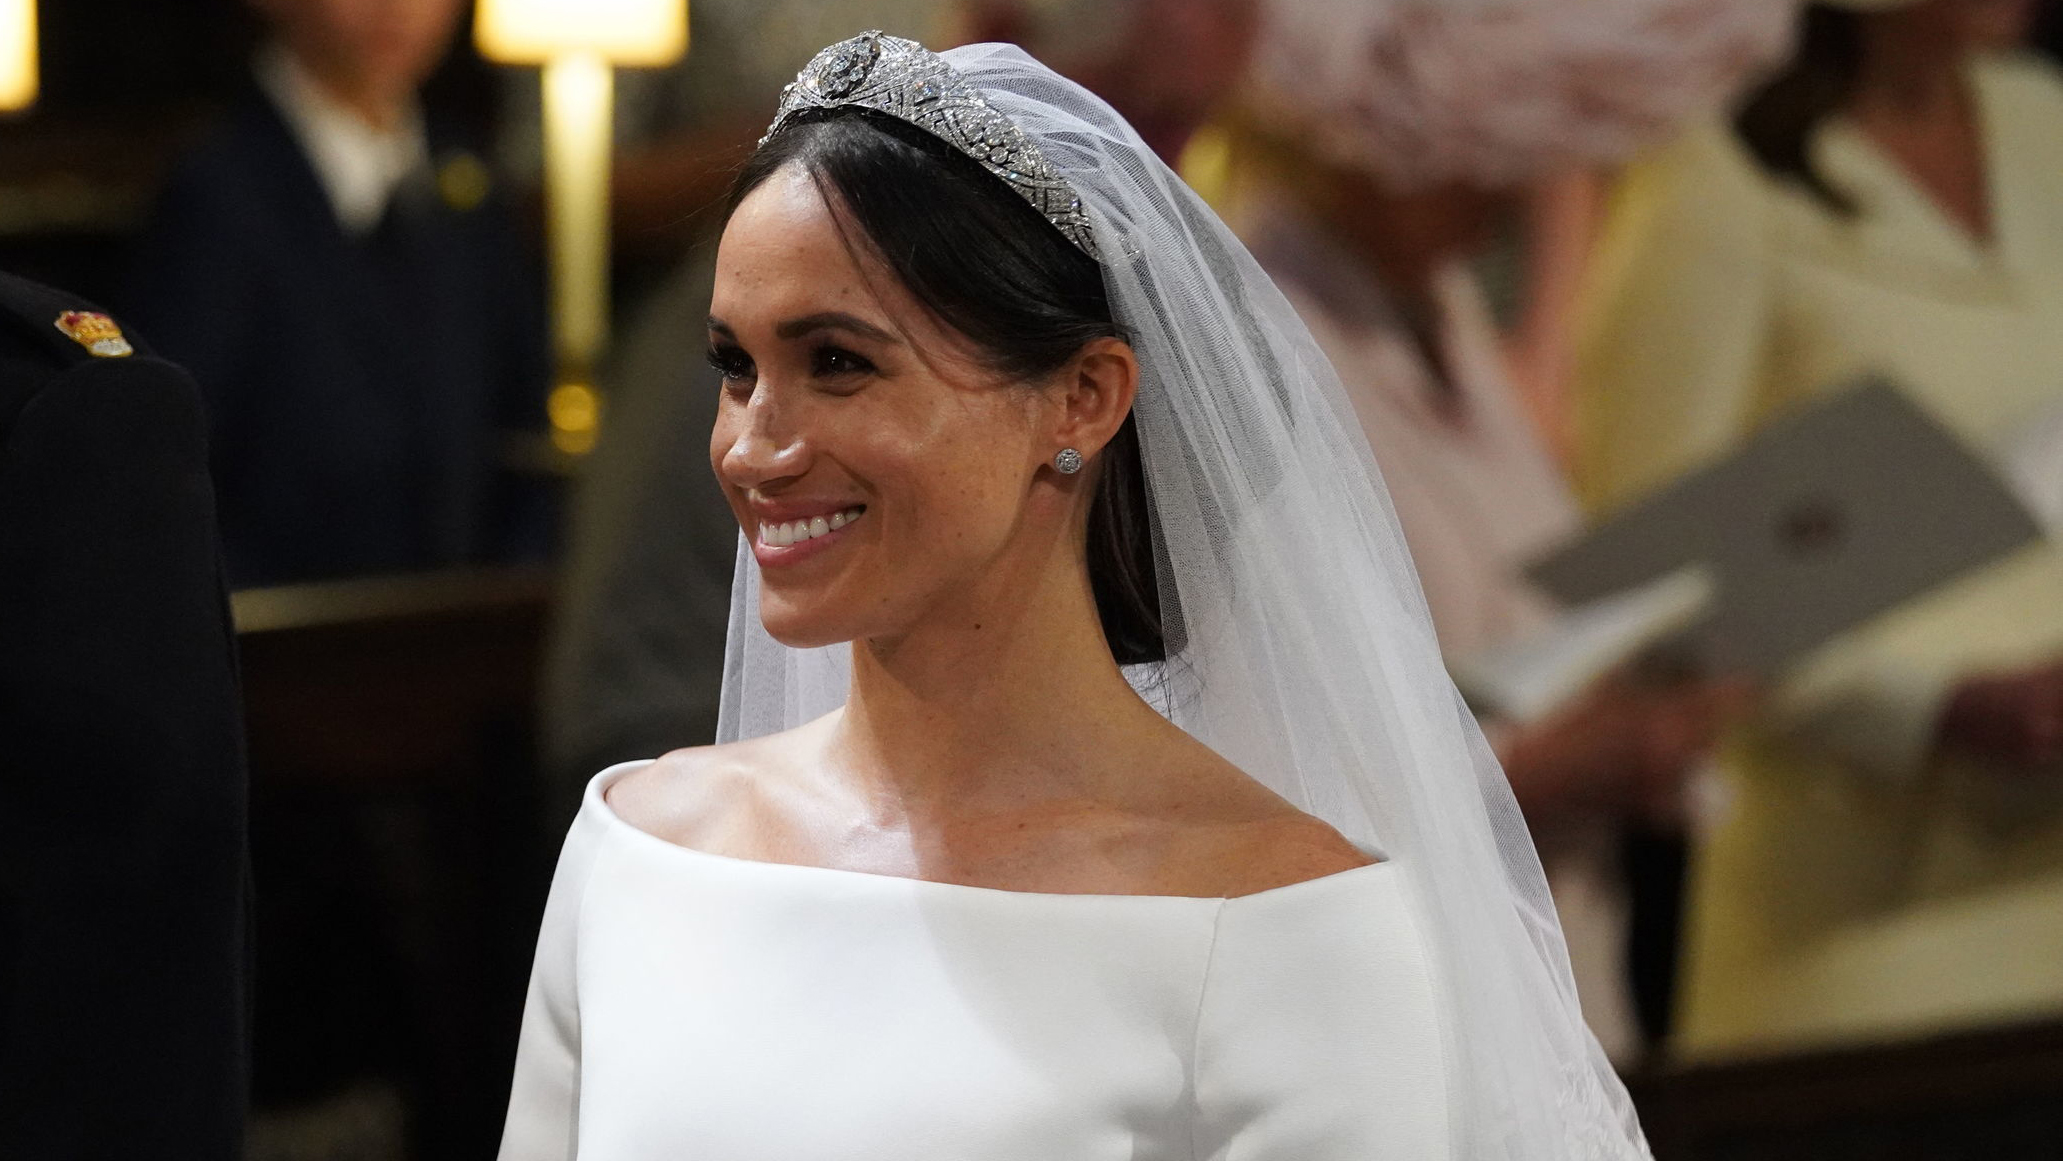 Meghan Markle Wedding Pictures.Meghan Markle S Wedding Dress Is By Givenchy S Clare Waight Keller